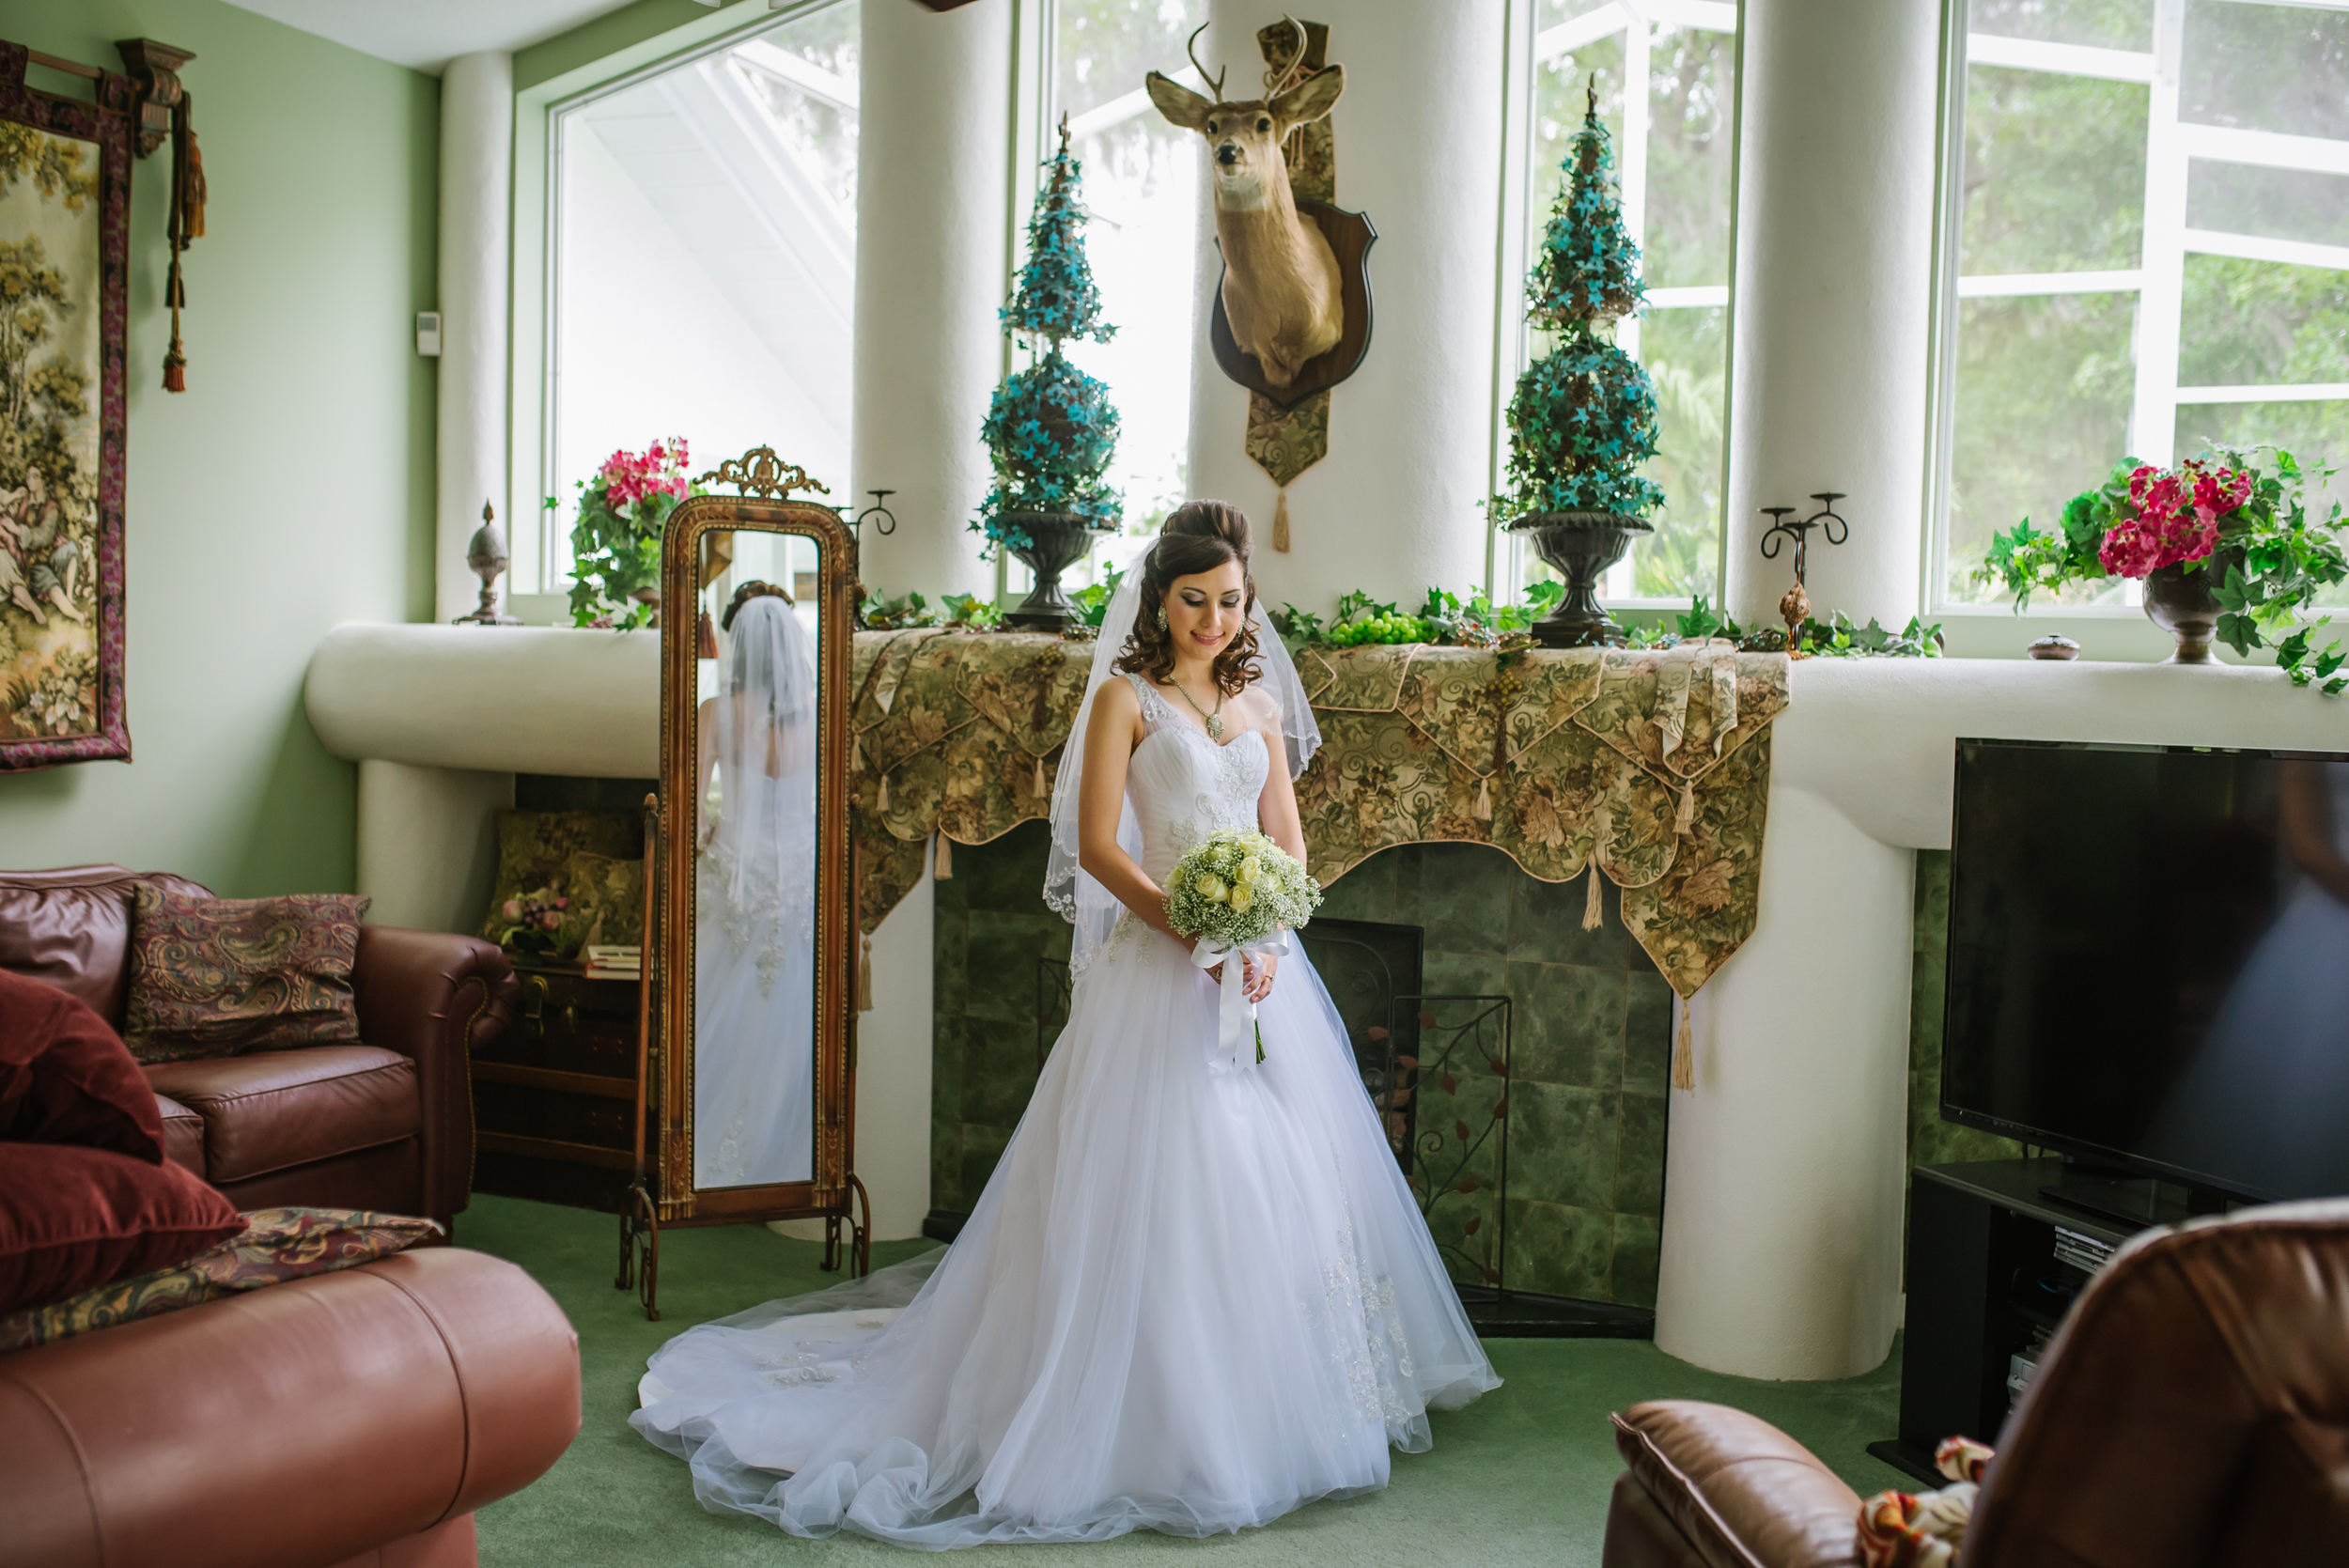 Sweet Liz & Josh got married at Sacred Heart, but first she got ready in her childhood home. I just love this portrait of Liz before she headed off to say I do.